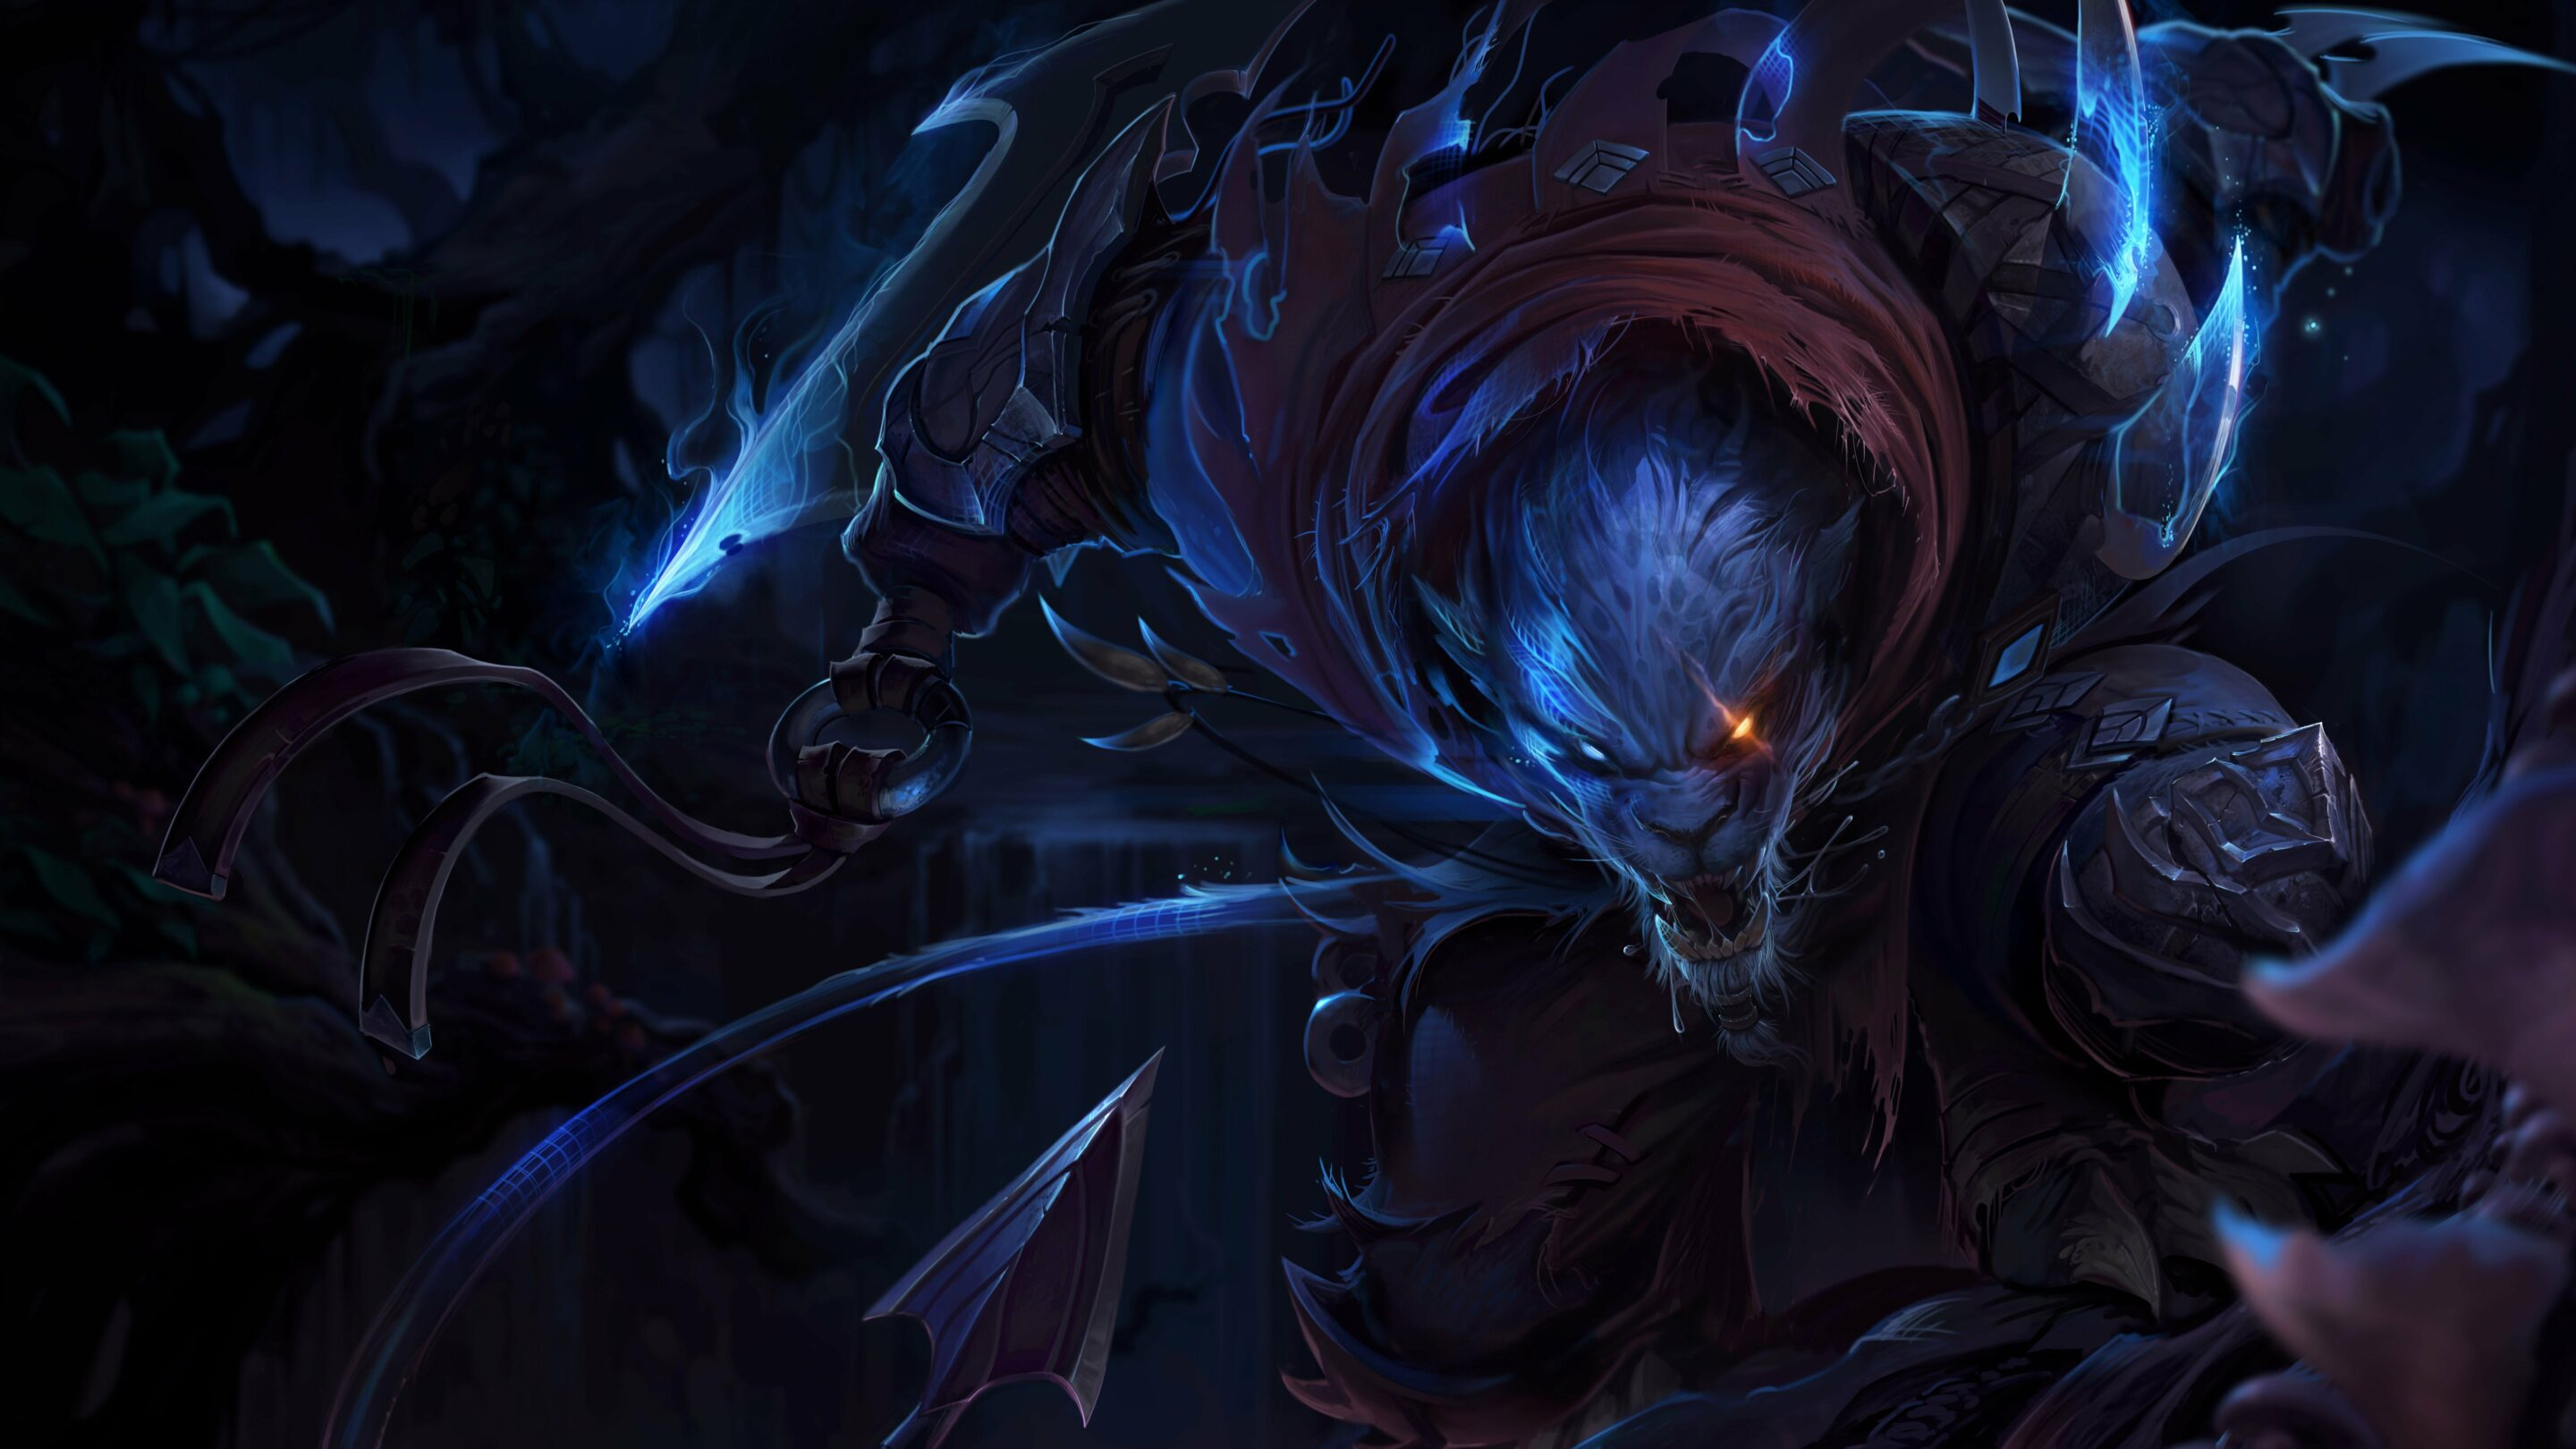 How To Make League of Legends Run Faster And Get Higher FPS